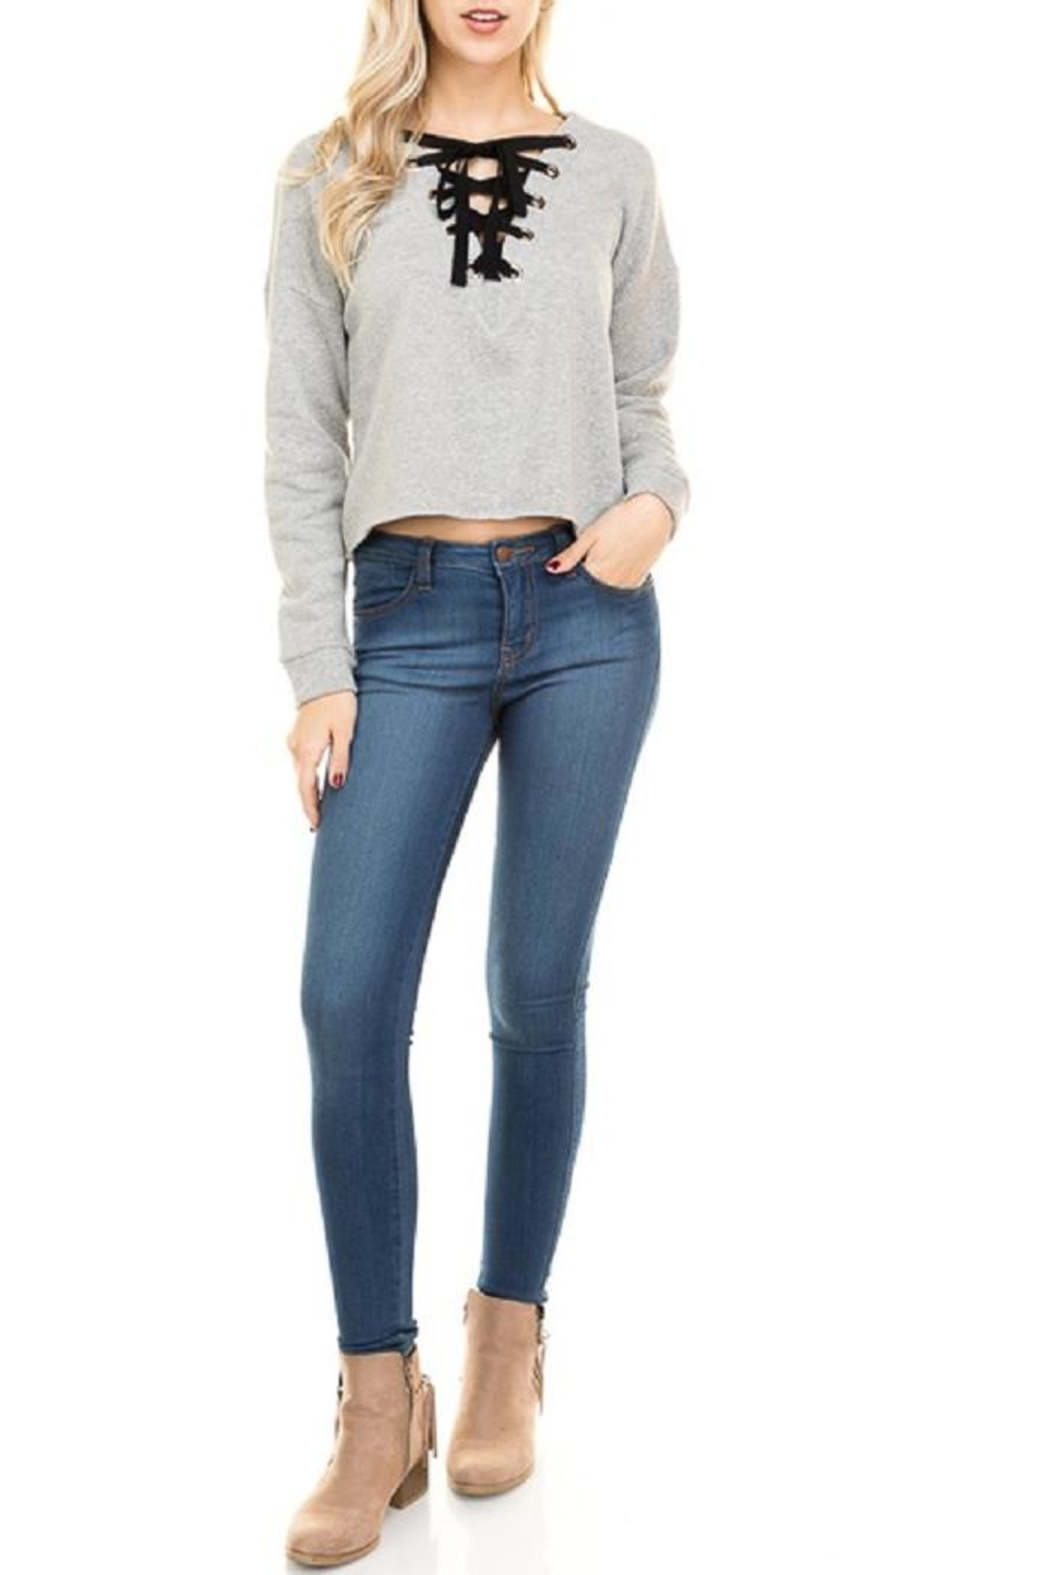 Hearts & Hips Lace Up Sweatshirt - Front Cropped Image